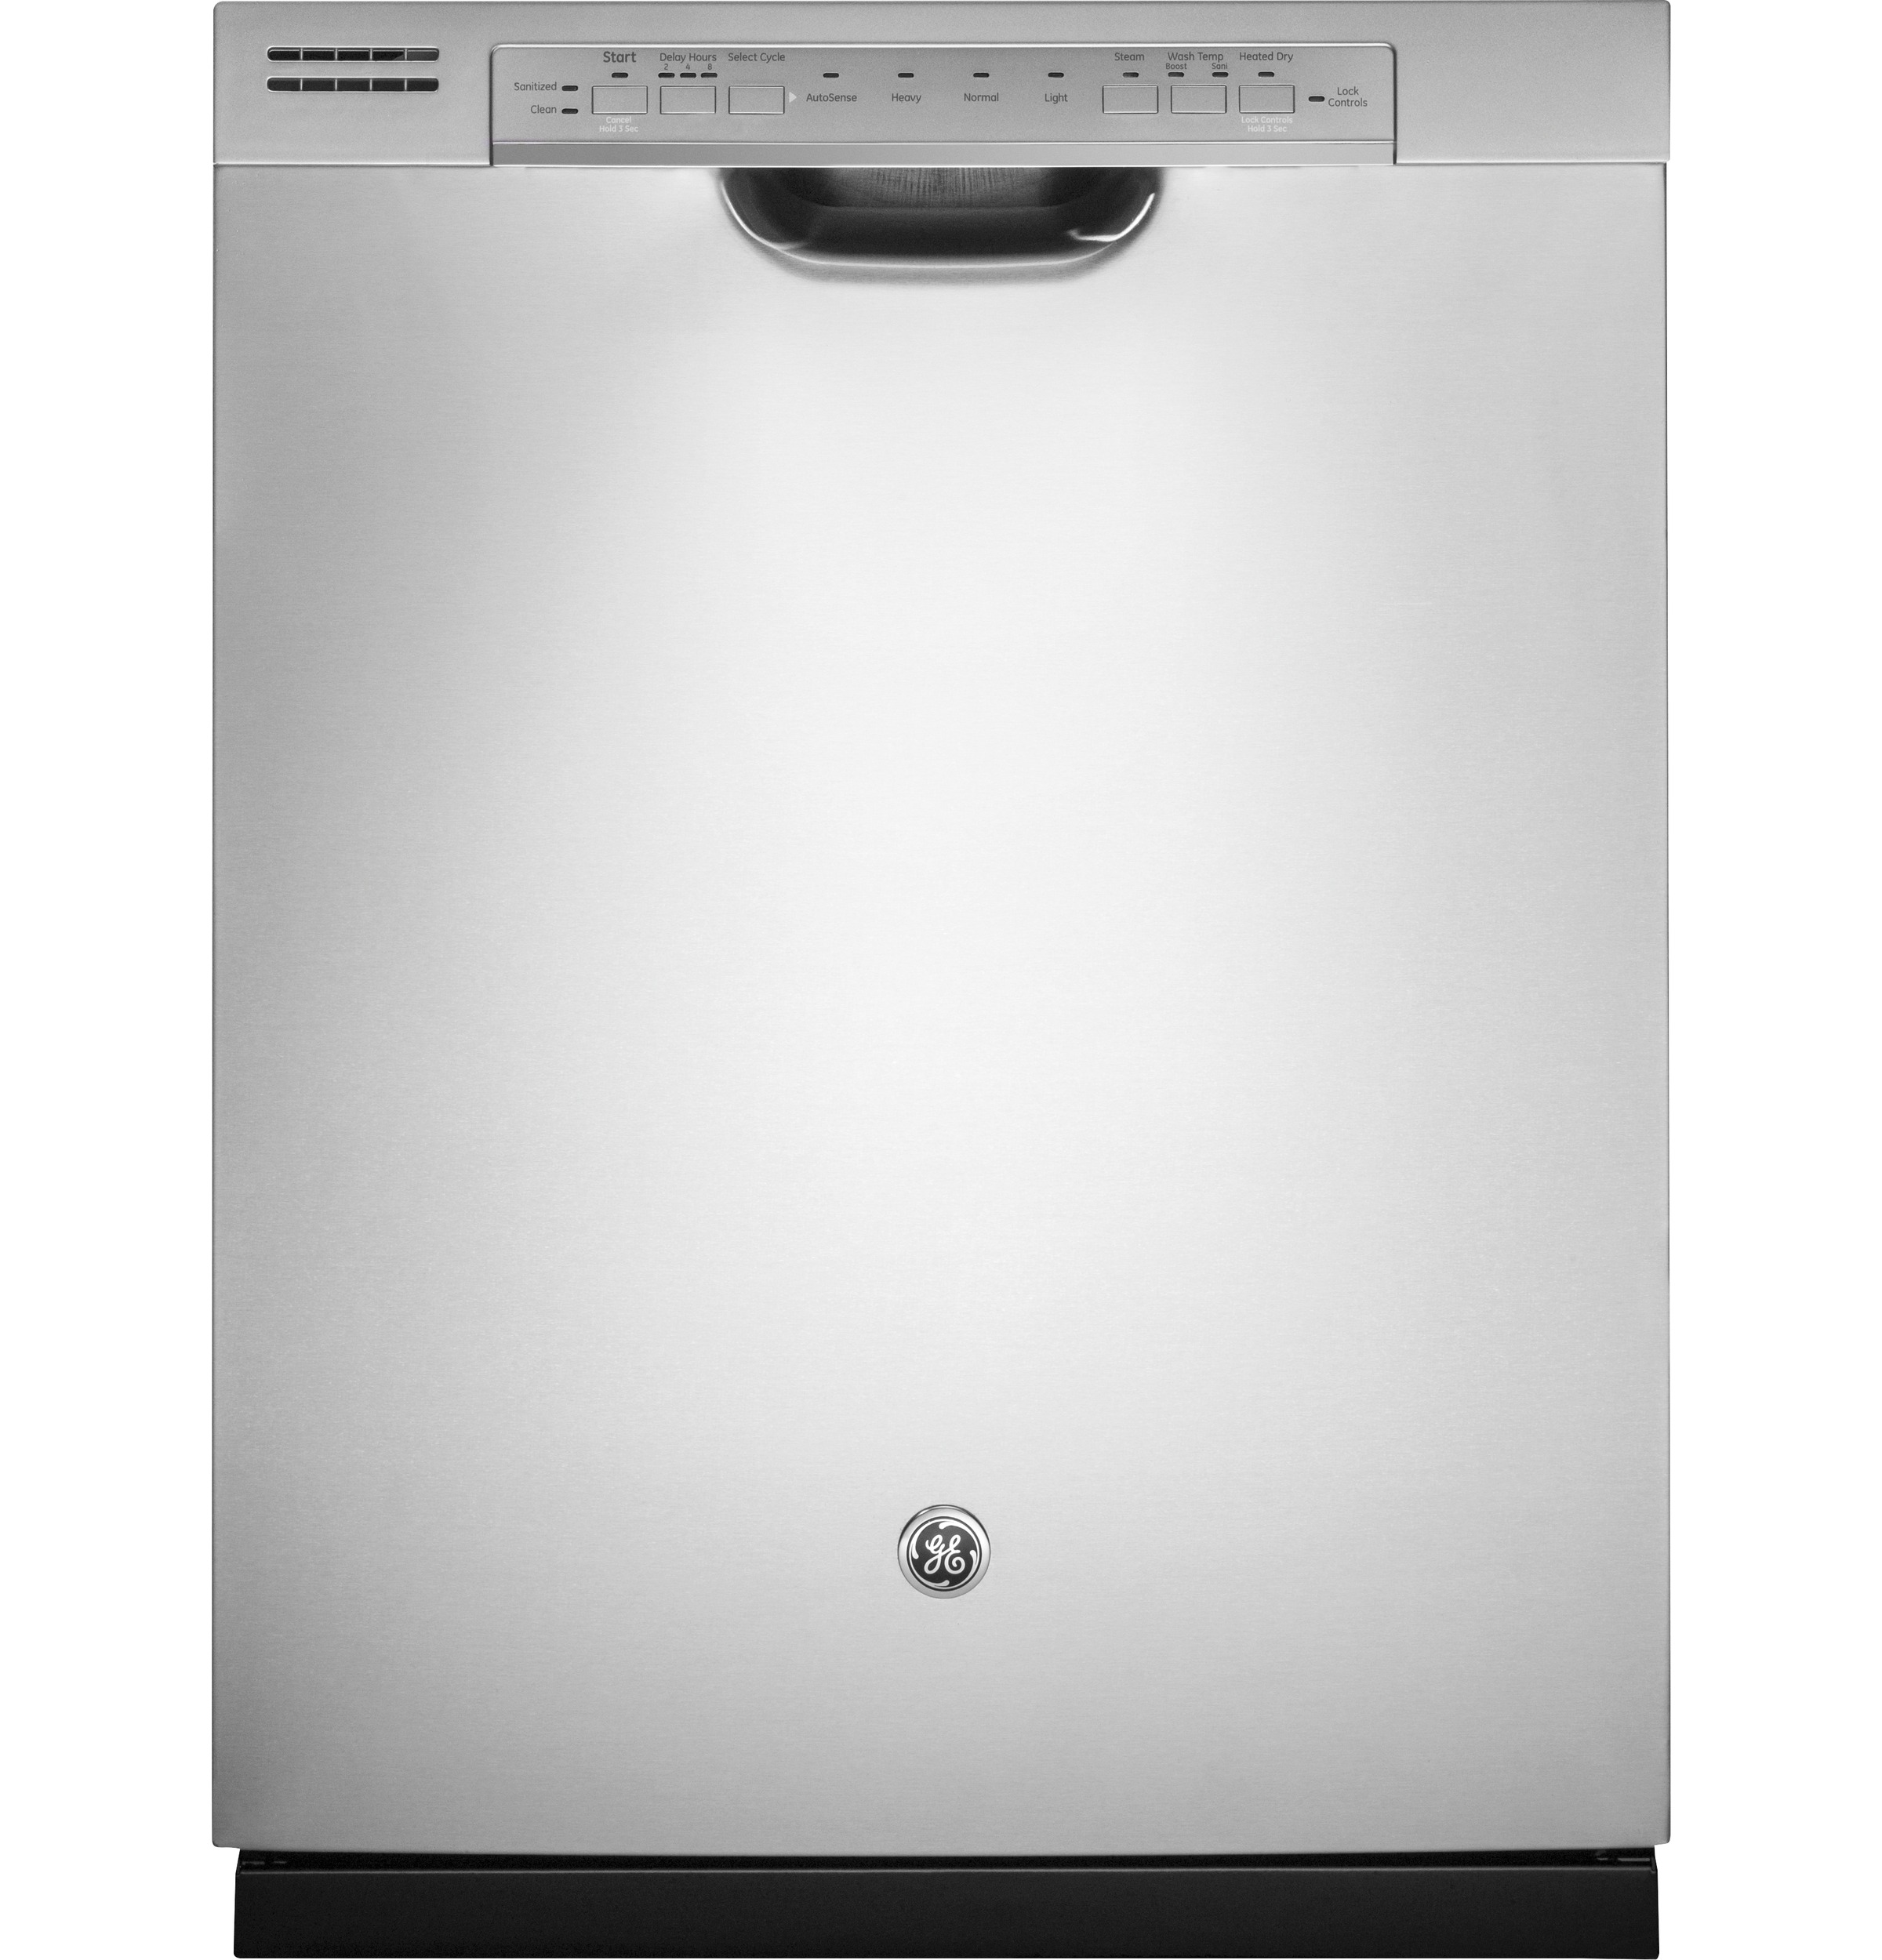 Ge Stainless Steel Interior Dishwasher With Front Controls Gdf570ssjss Ge Appliances